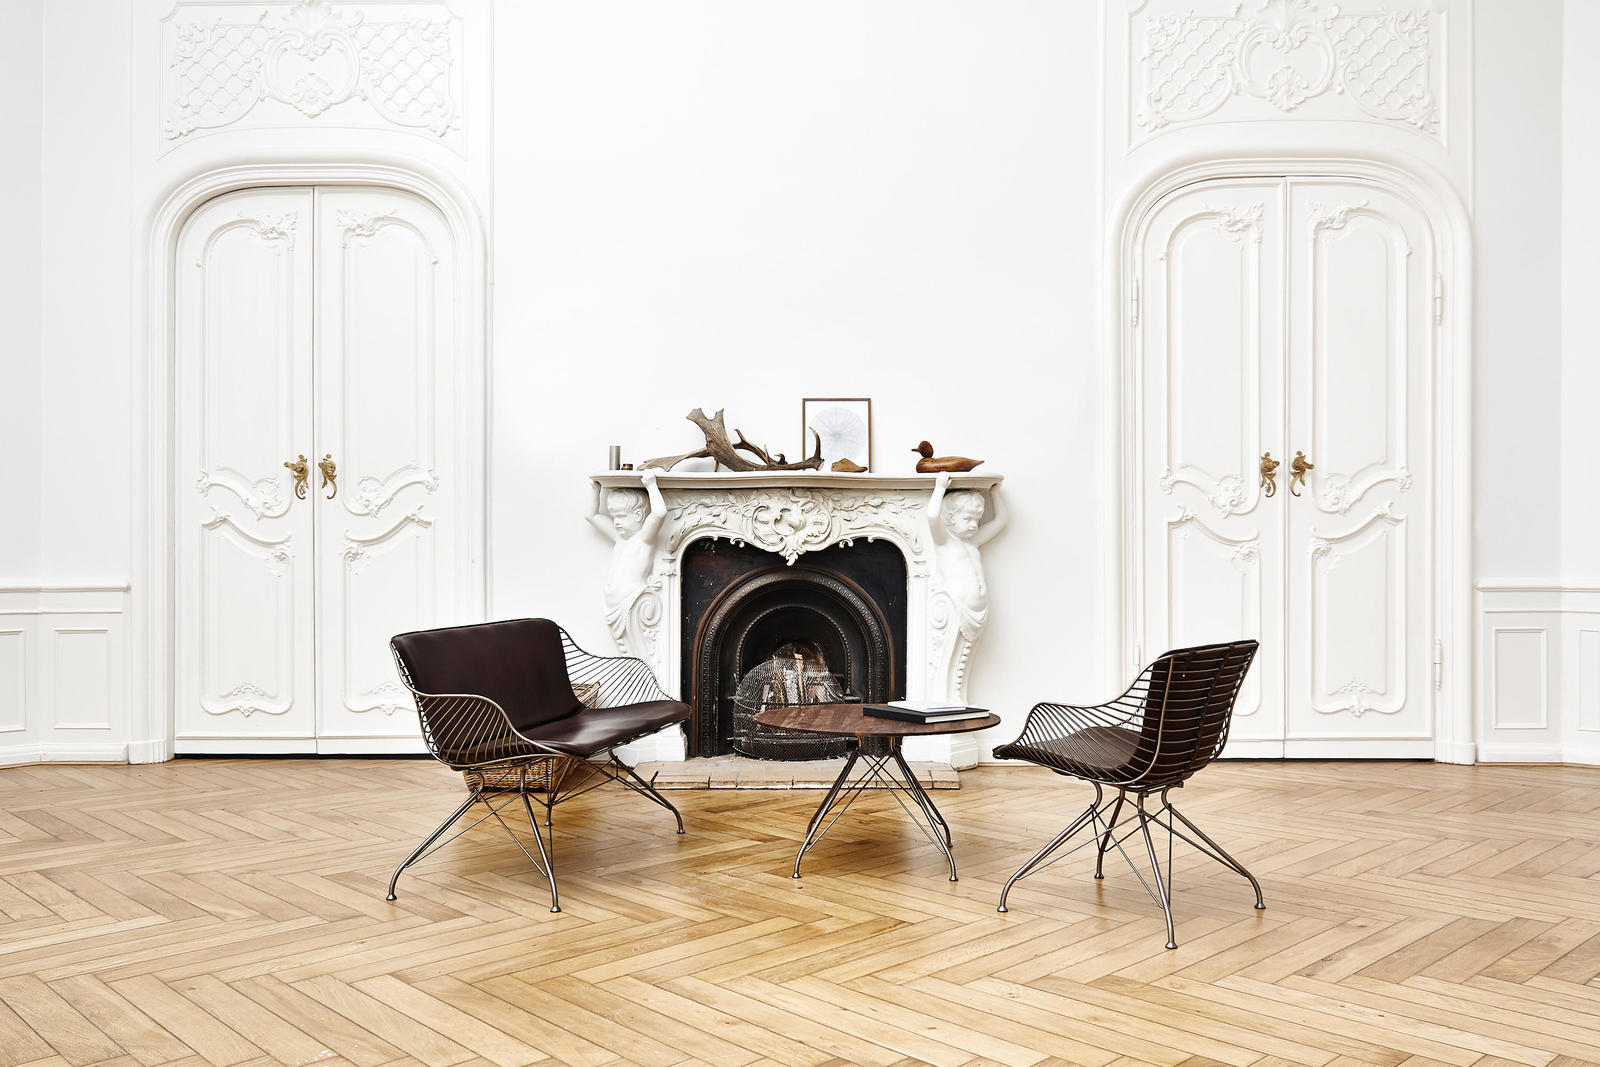 Wire Dining Chair by Overgaard & Dyrman.